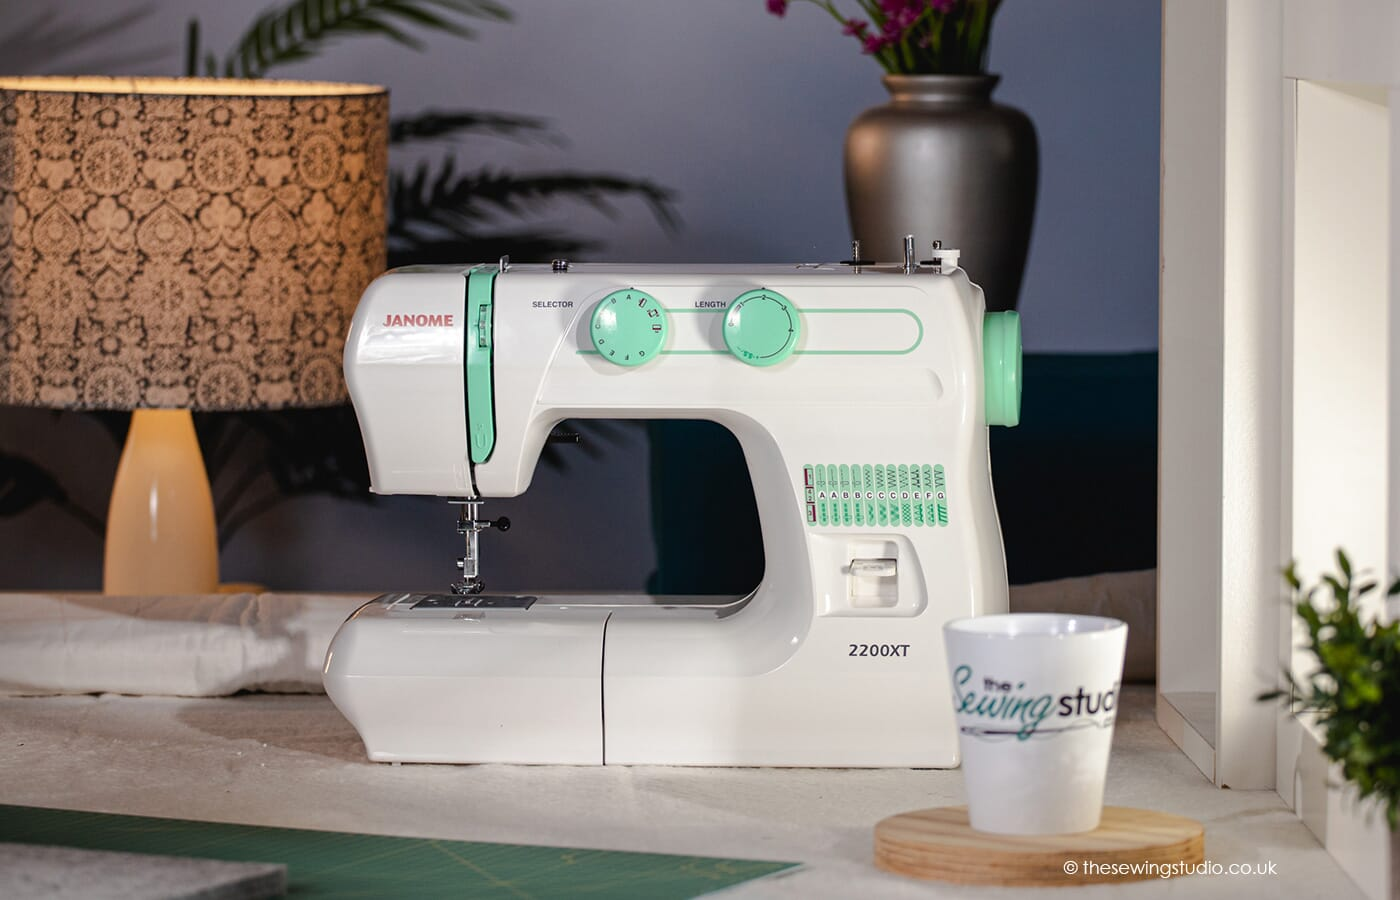 Janome 2200XT Sewing Machine in a Sewing Room